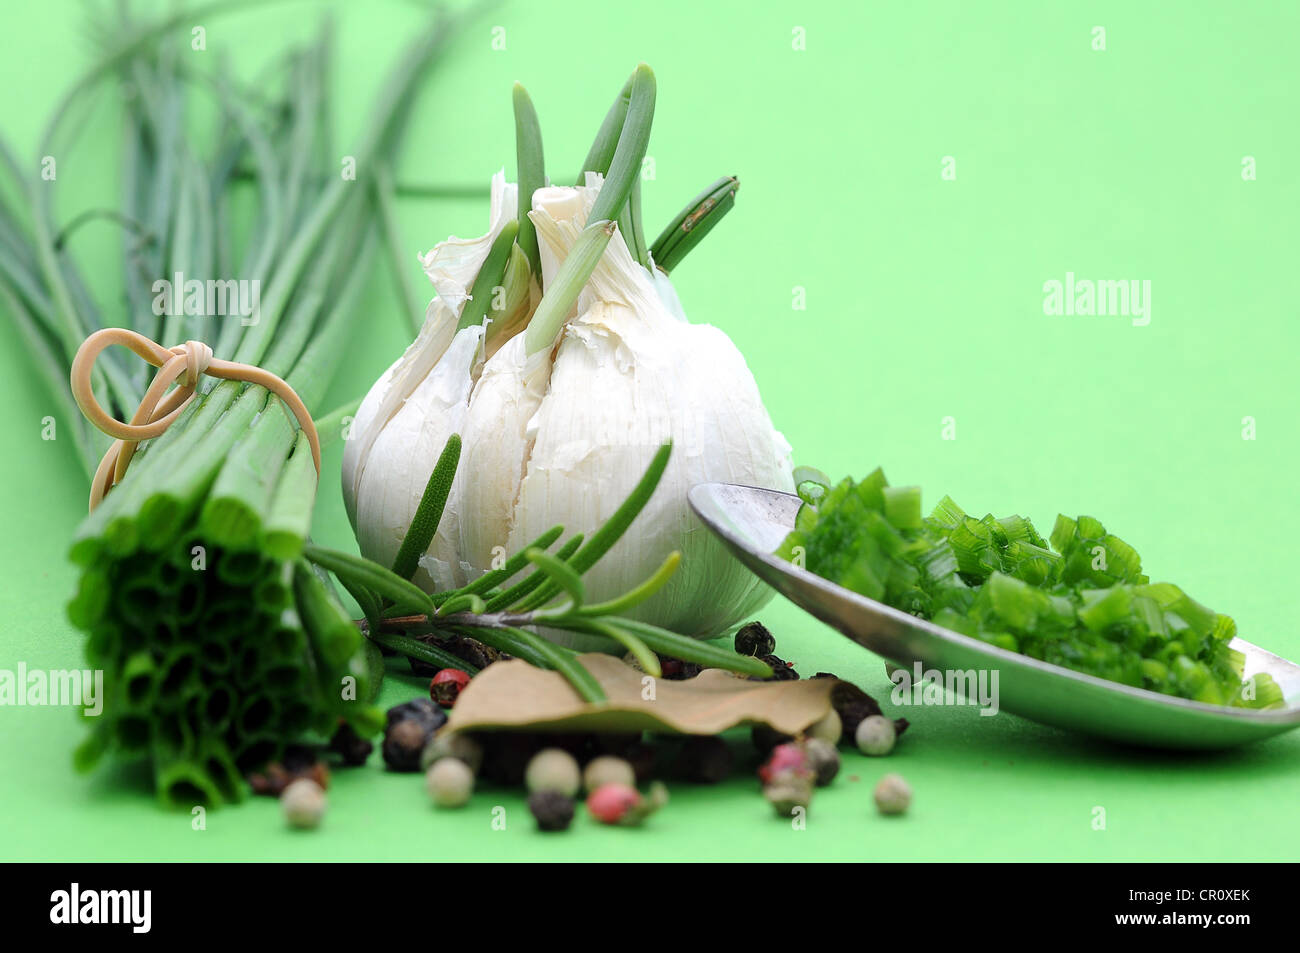 Culinary herbs and spices, chives, garlic, rosemary, pepper, bay leaf - Stock Image